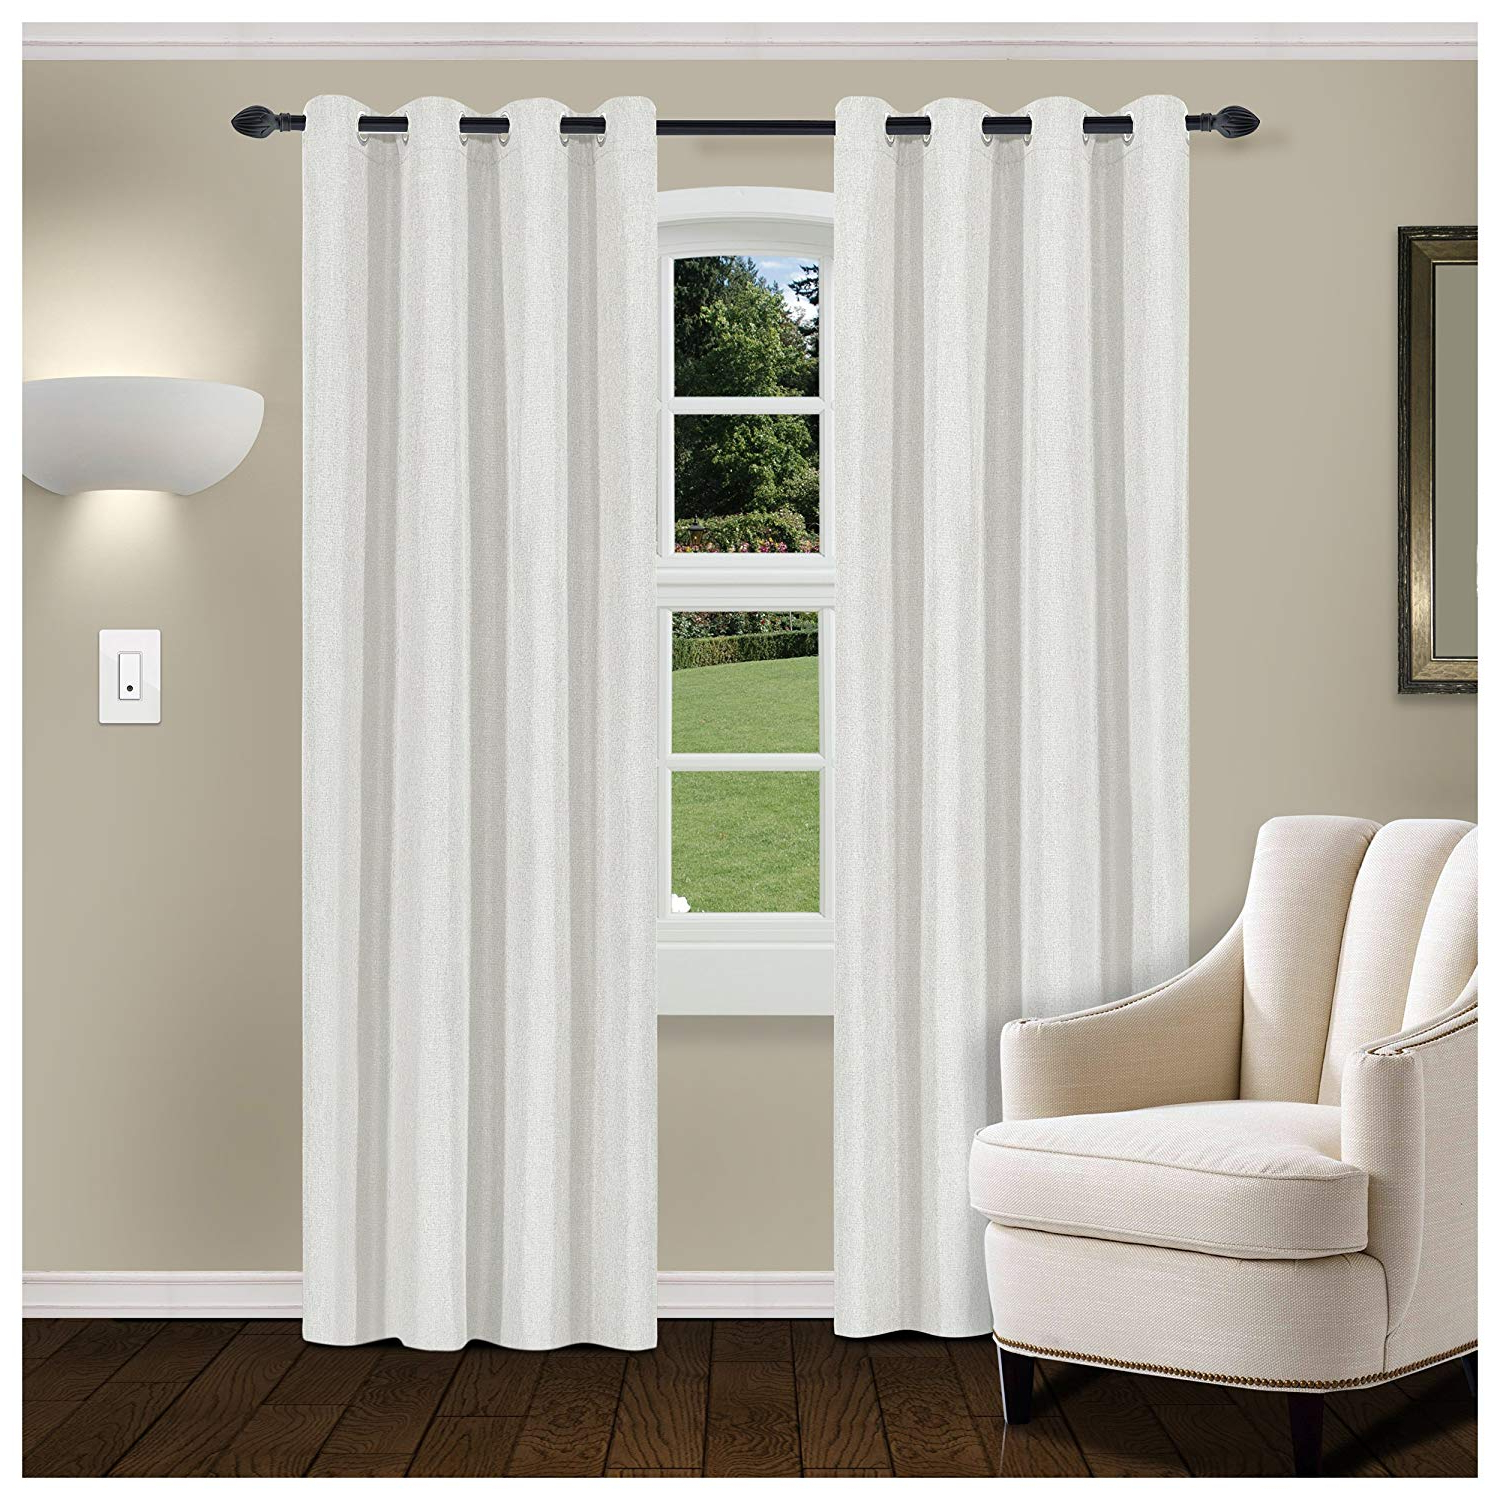 Trendy Thermal Insulated Blackout Curtain Pairs Regarding Superior Linen Textured Blackout Curtain Set Of 2, Thermal Insulated Panel Pair With Grommet Top Header, Classic Natural Look Room Darkening Drapes, (View 7 of 20)